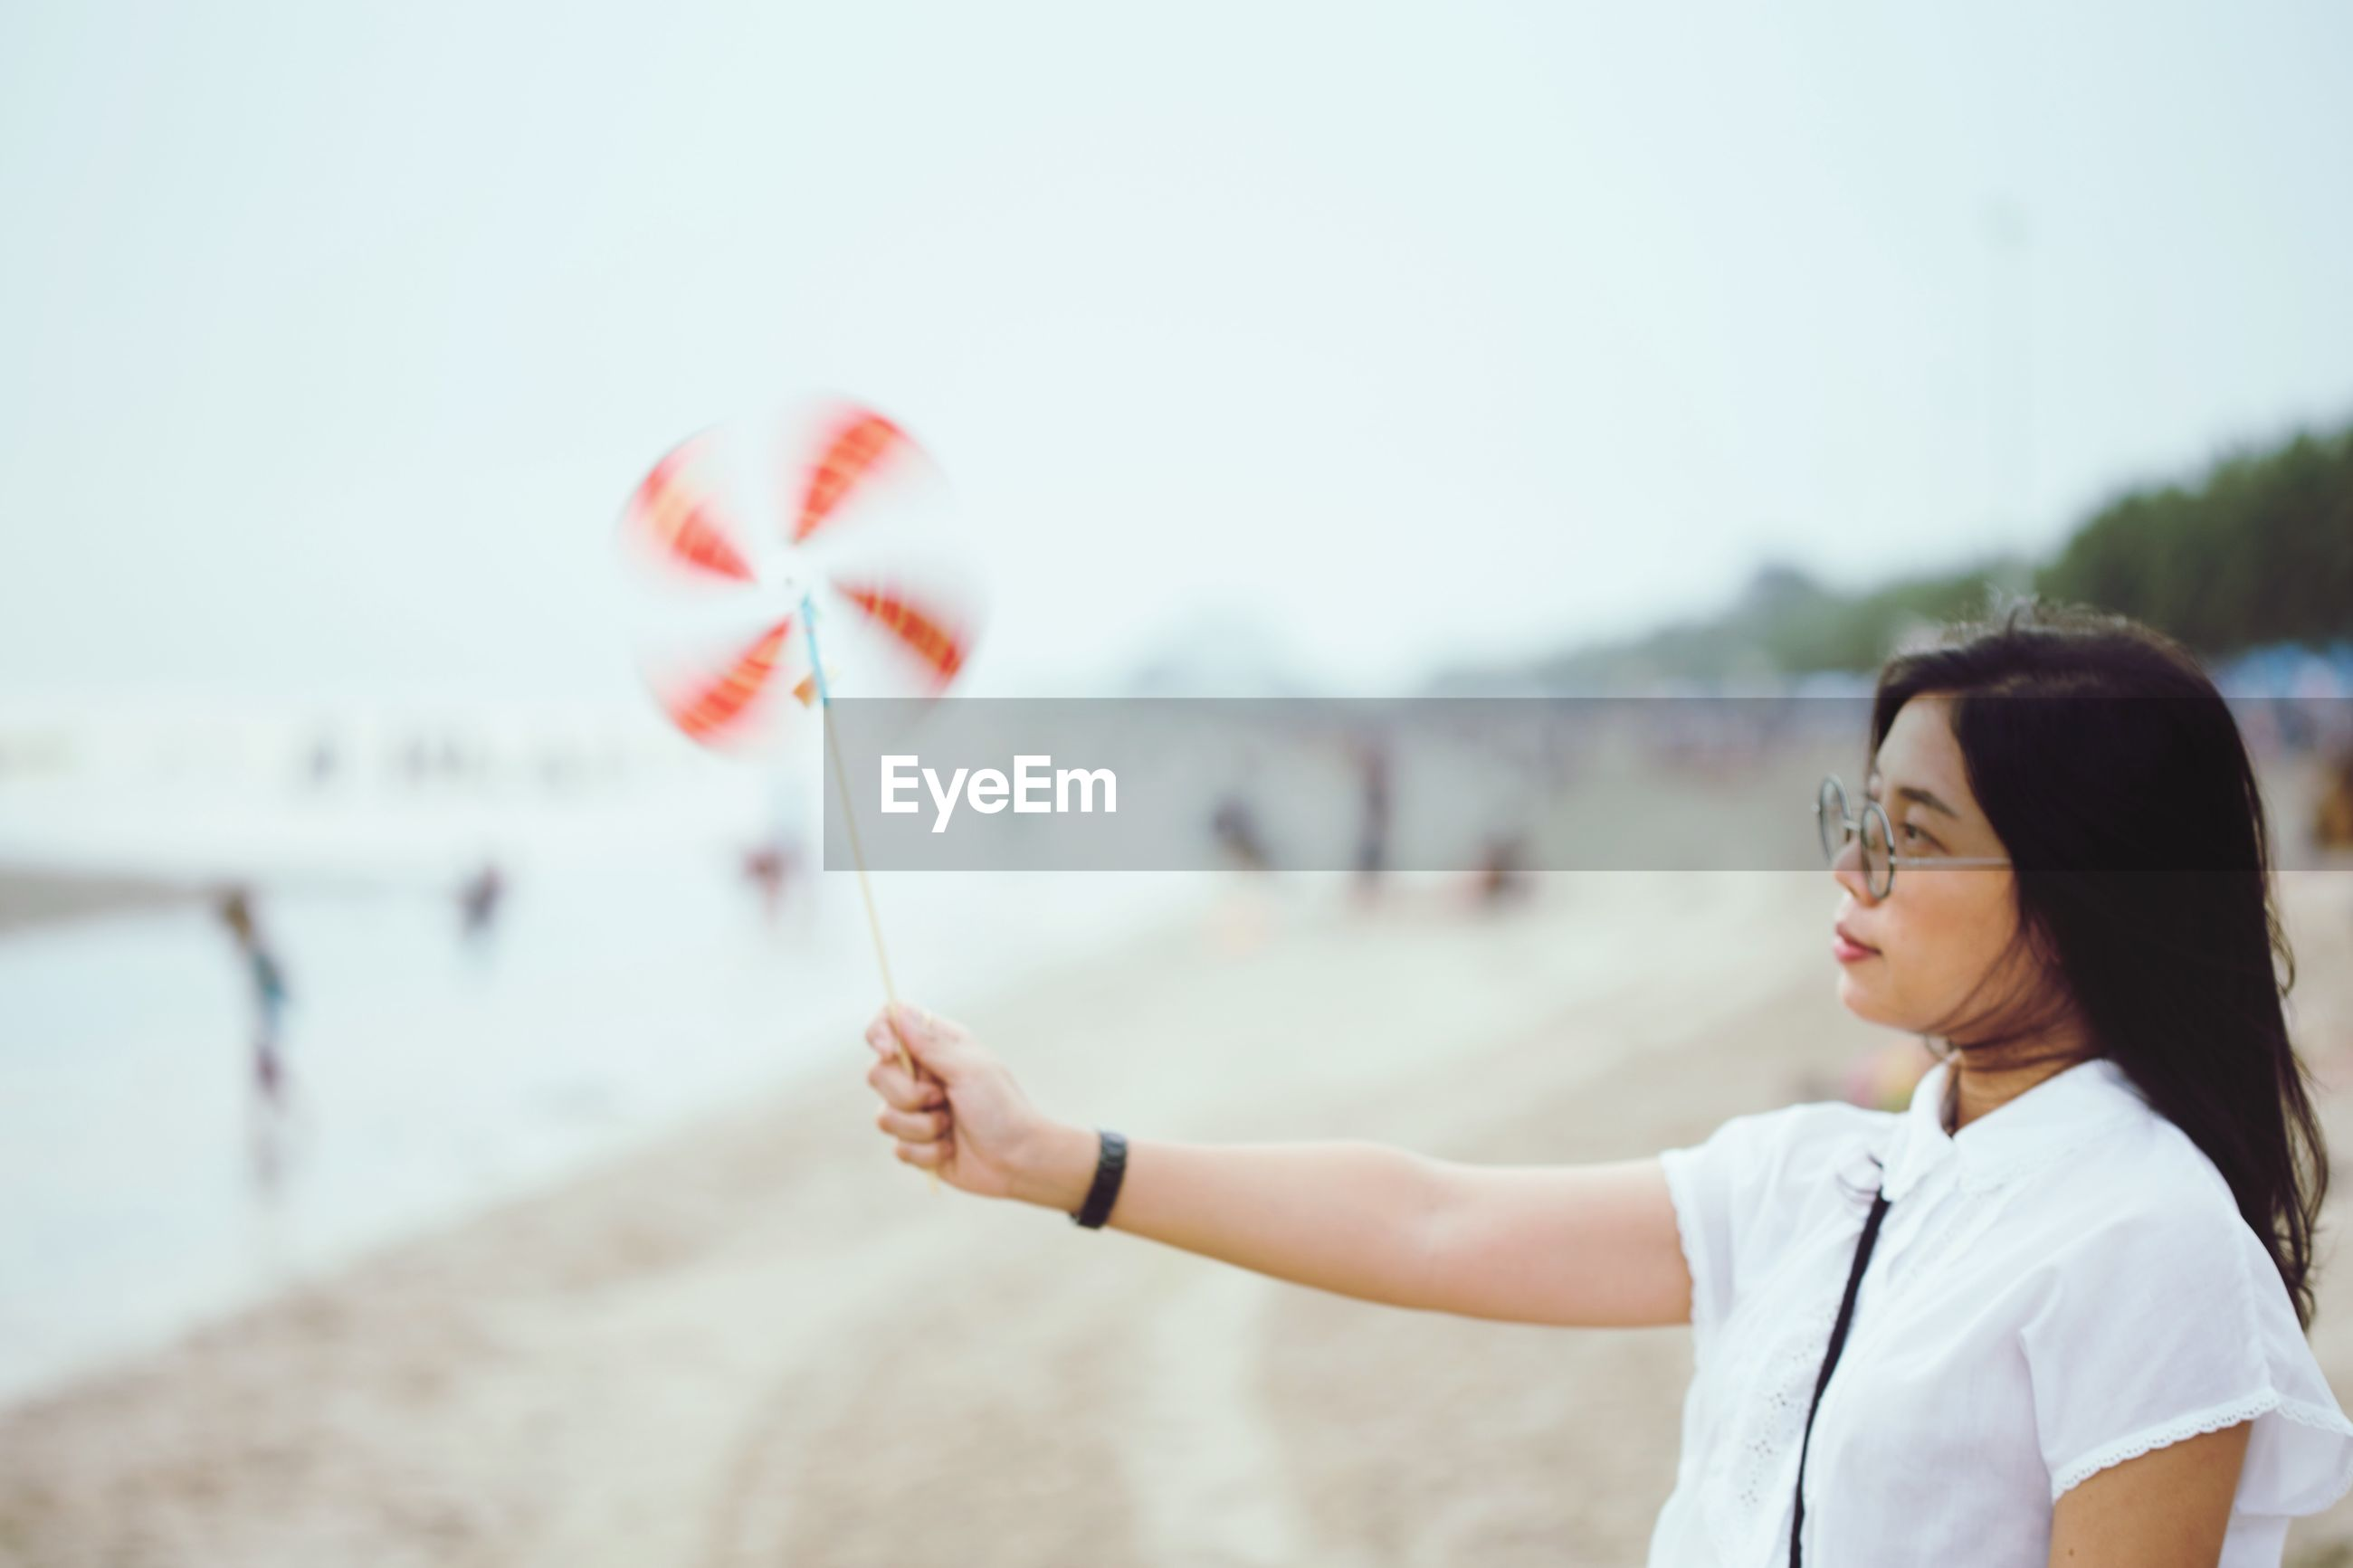 Woman holding pinwheel while standing at beach against sky